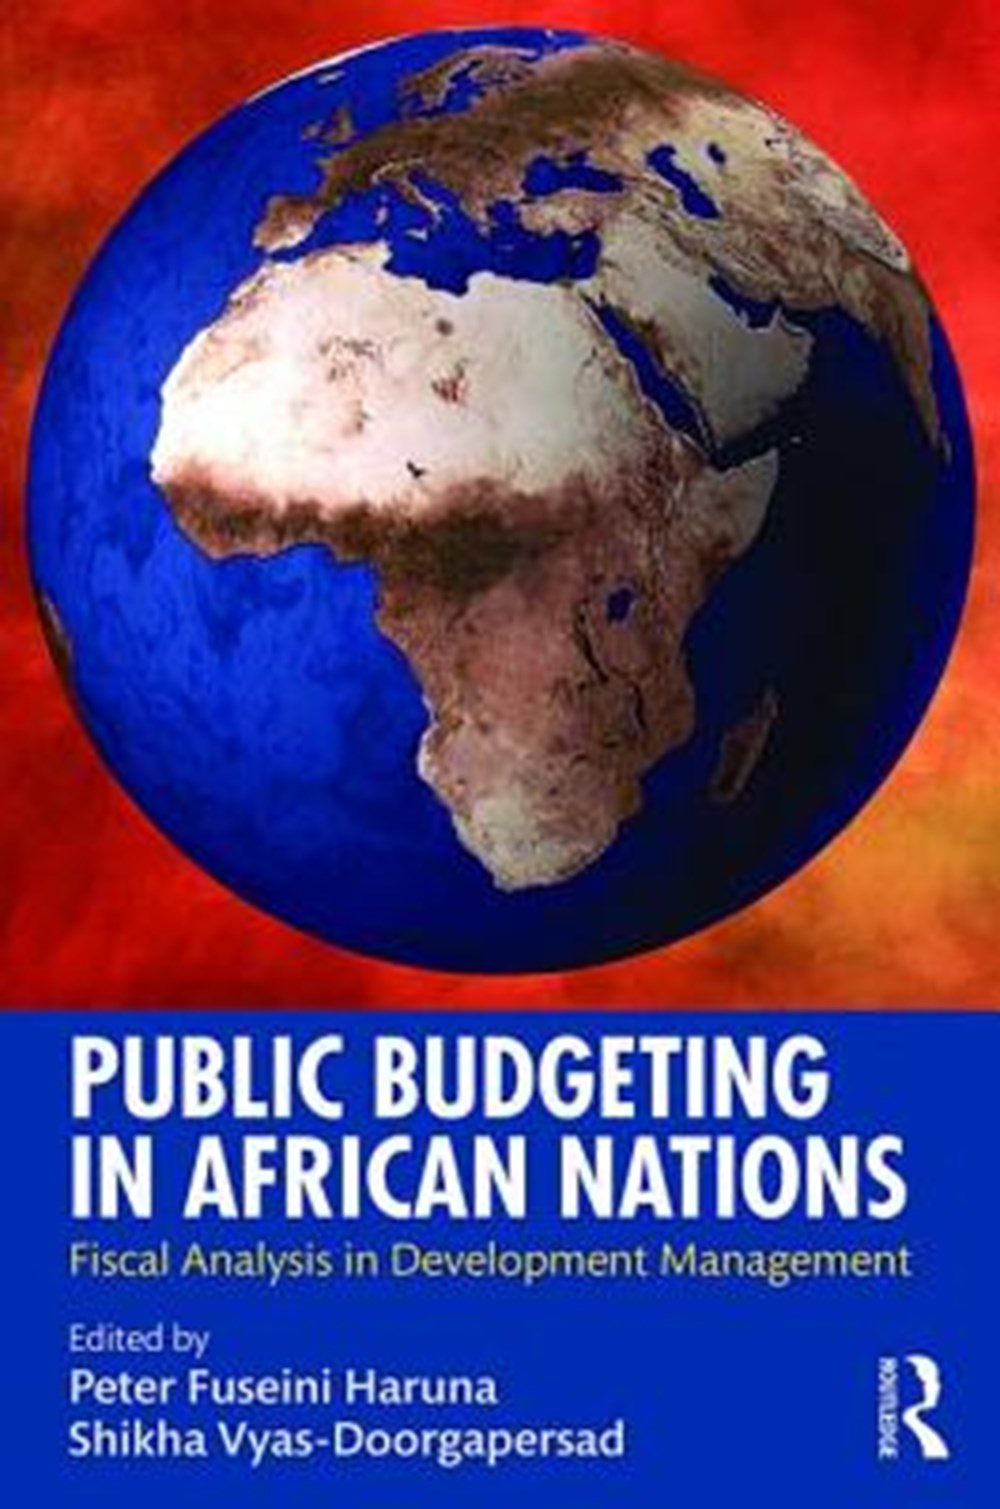 Public Budgeting in African Nations Fiscal Analysis in Development Management